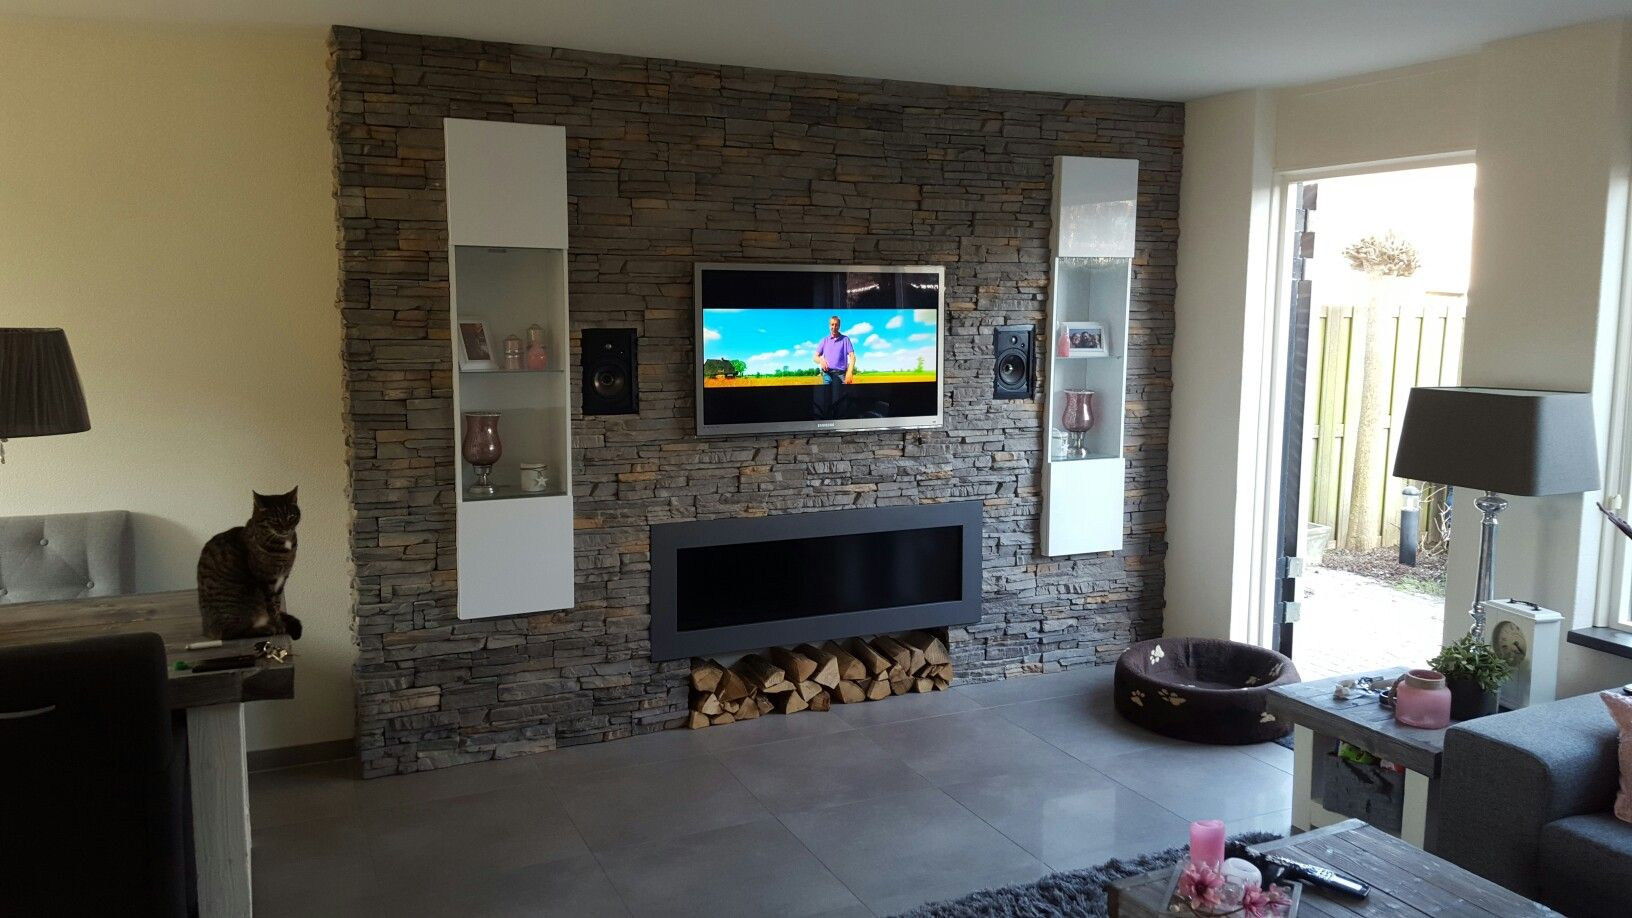 Tv Wand Pinterest Tv Wand Gemaakt Met Steen Strips Tv Muur Meubel Home Decor Wands